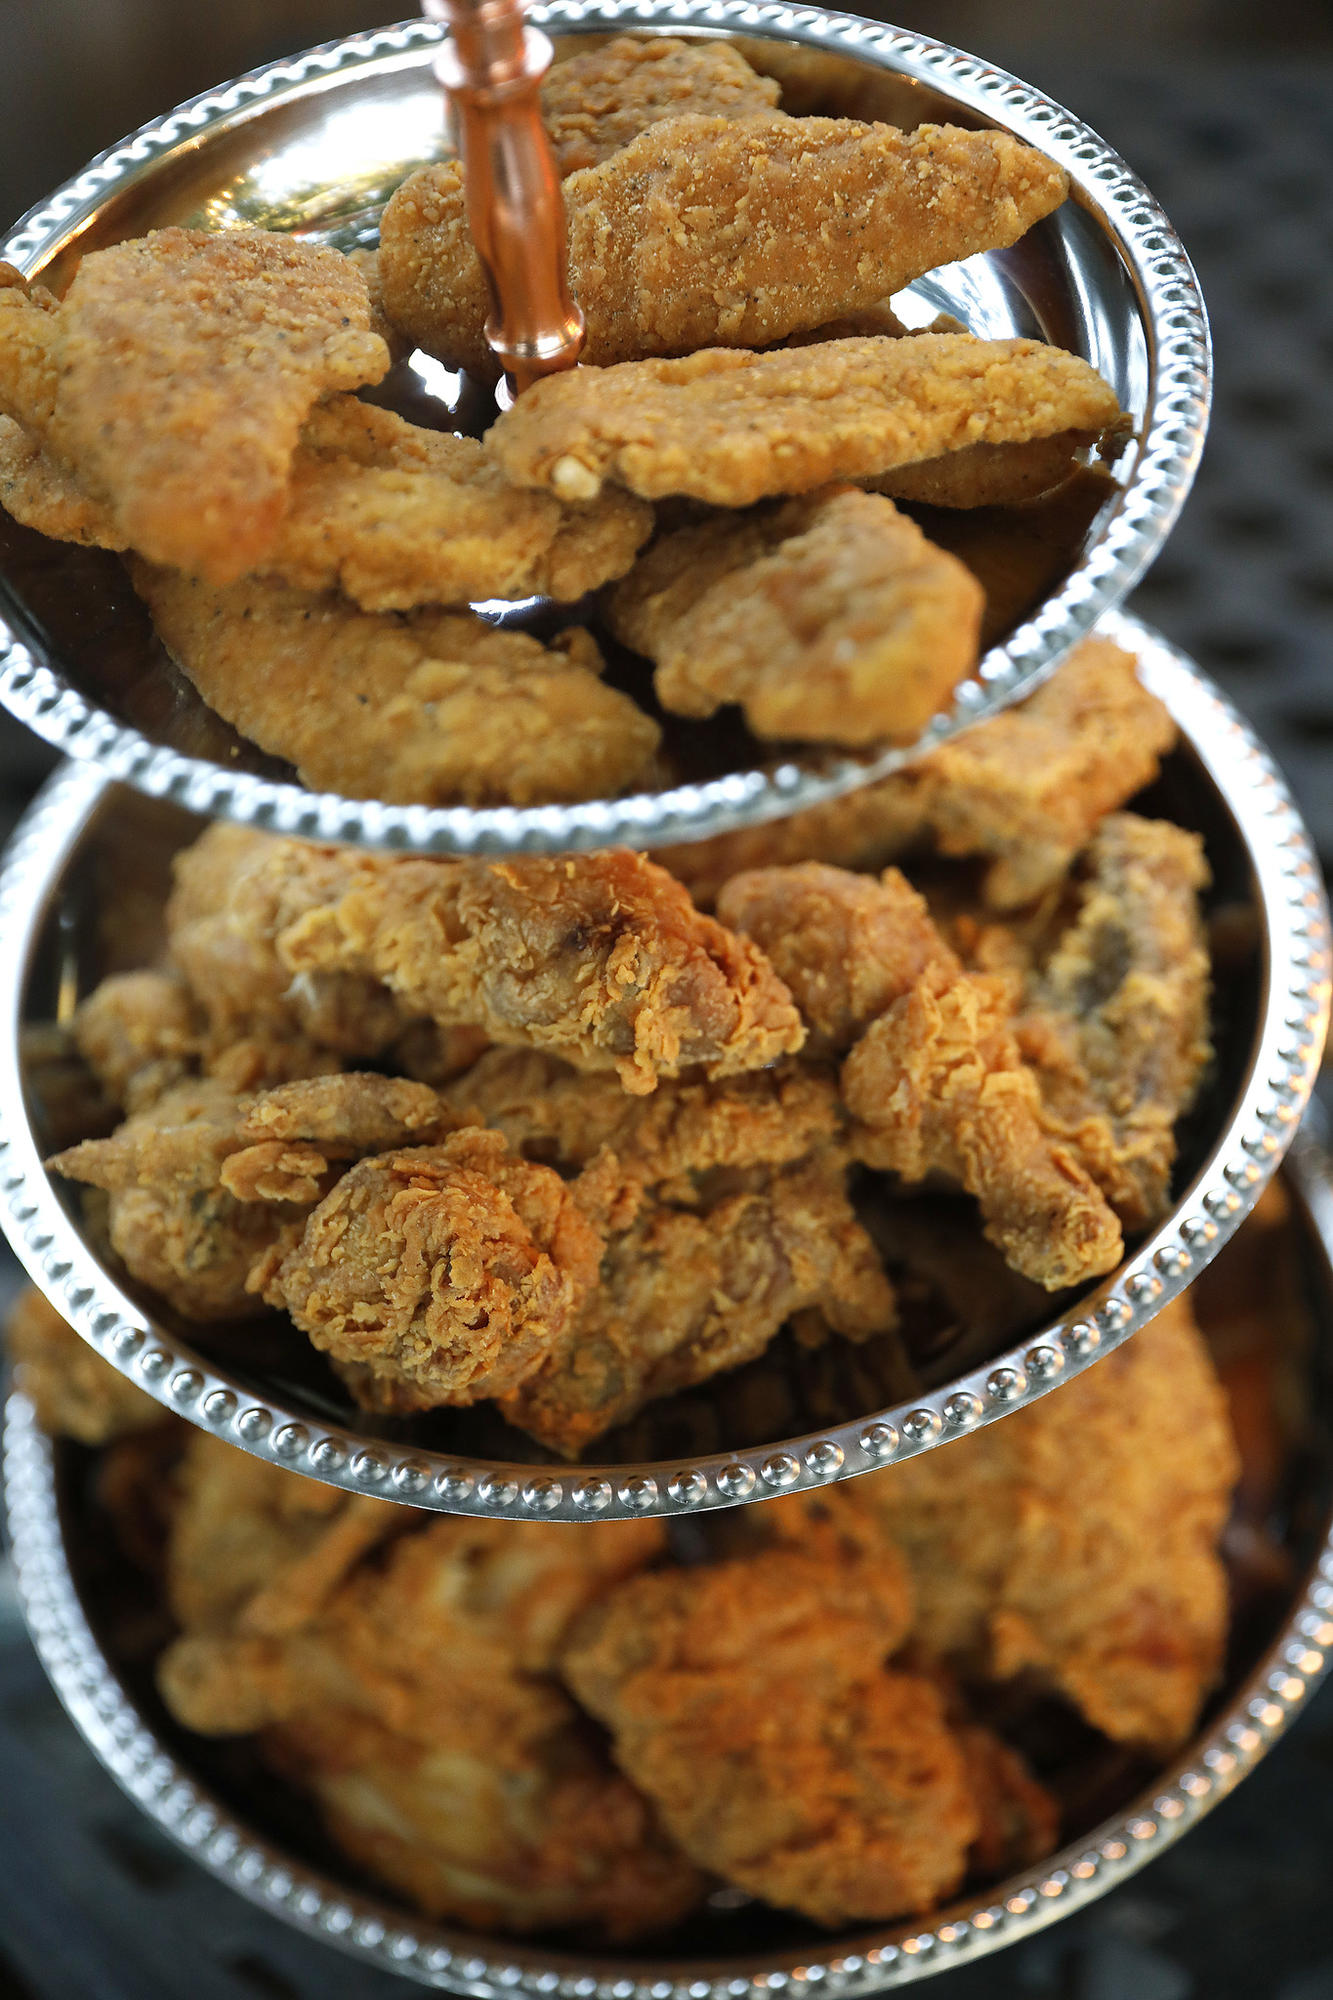 Fried chicken dinner party